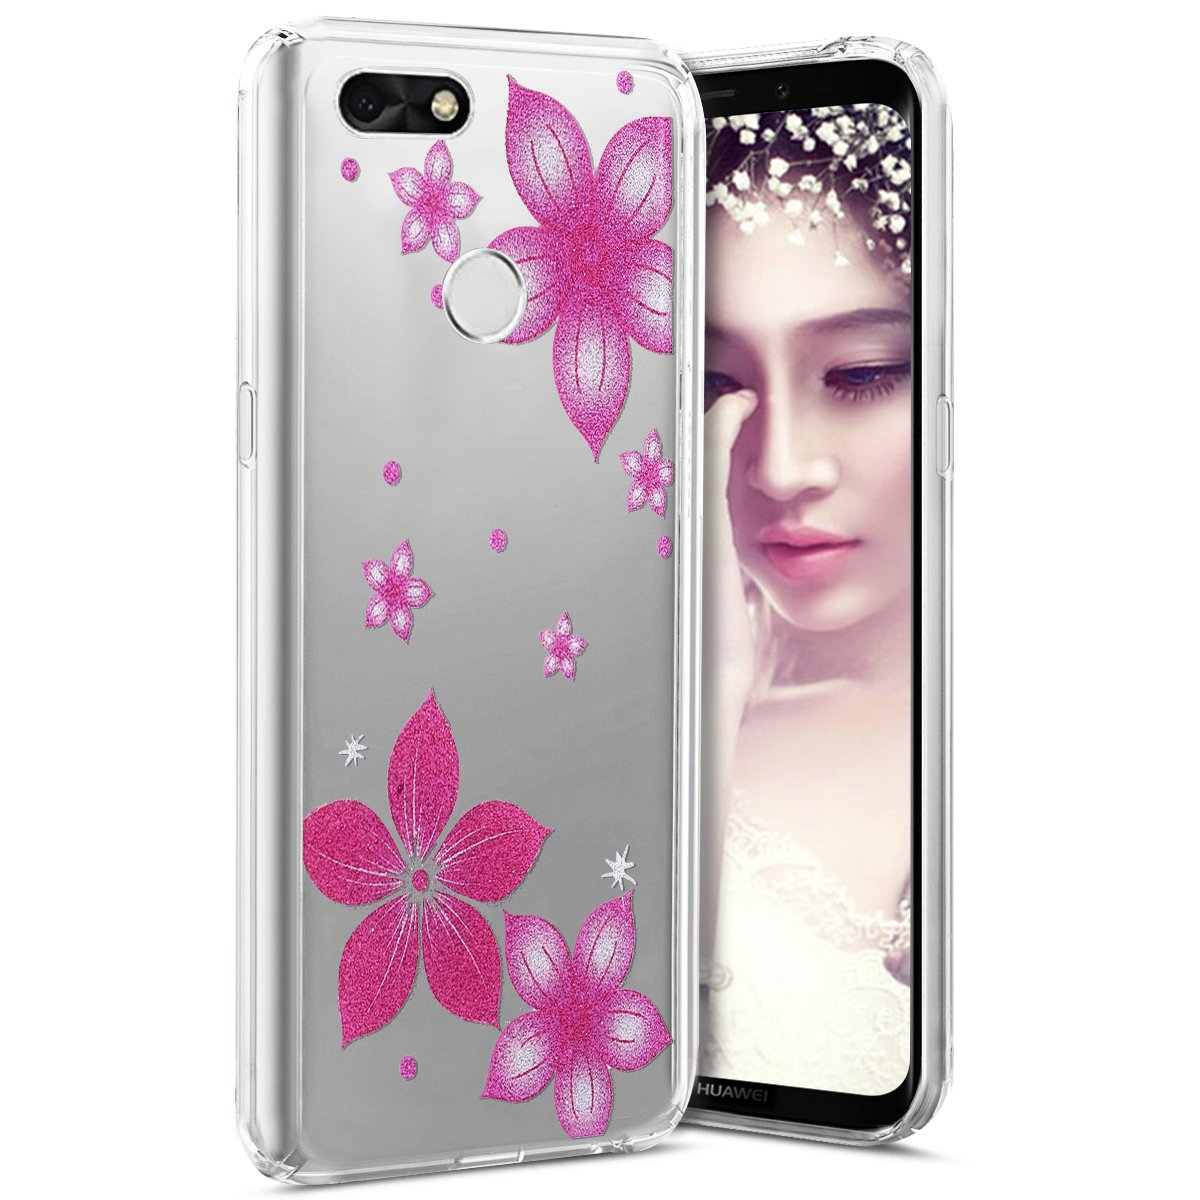 Huawei P9 Lite Mini Case, Huawei P9 Lite Mini Case Glitter, TPU Silicone Case for Huawei P9 Lite Mini Transparent Clear [Ultra Thin] Clear Soft TPU Case with Colorful Flowers Campanula Butterfly W W Surakey SUR06651